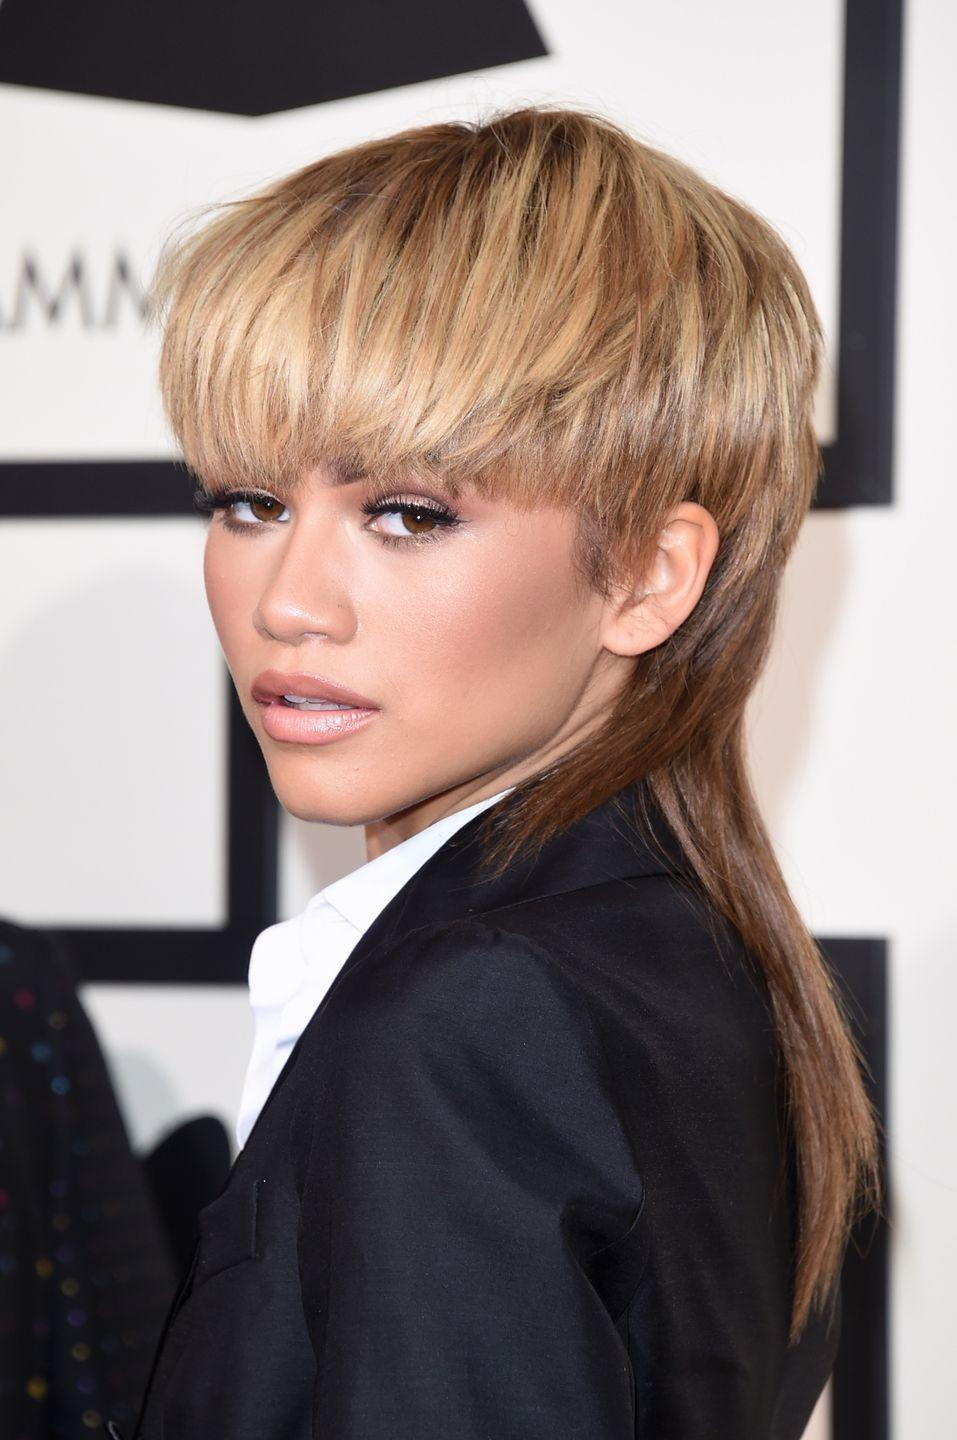 <p>Only Queen Z could rock the worst hairstyle ever invented and make it look trendy AF. This 2016 Grammys moment marked the only time in life any of us has wanted a mullet.</p>